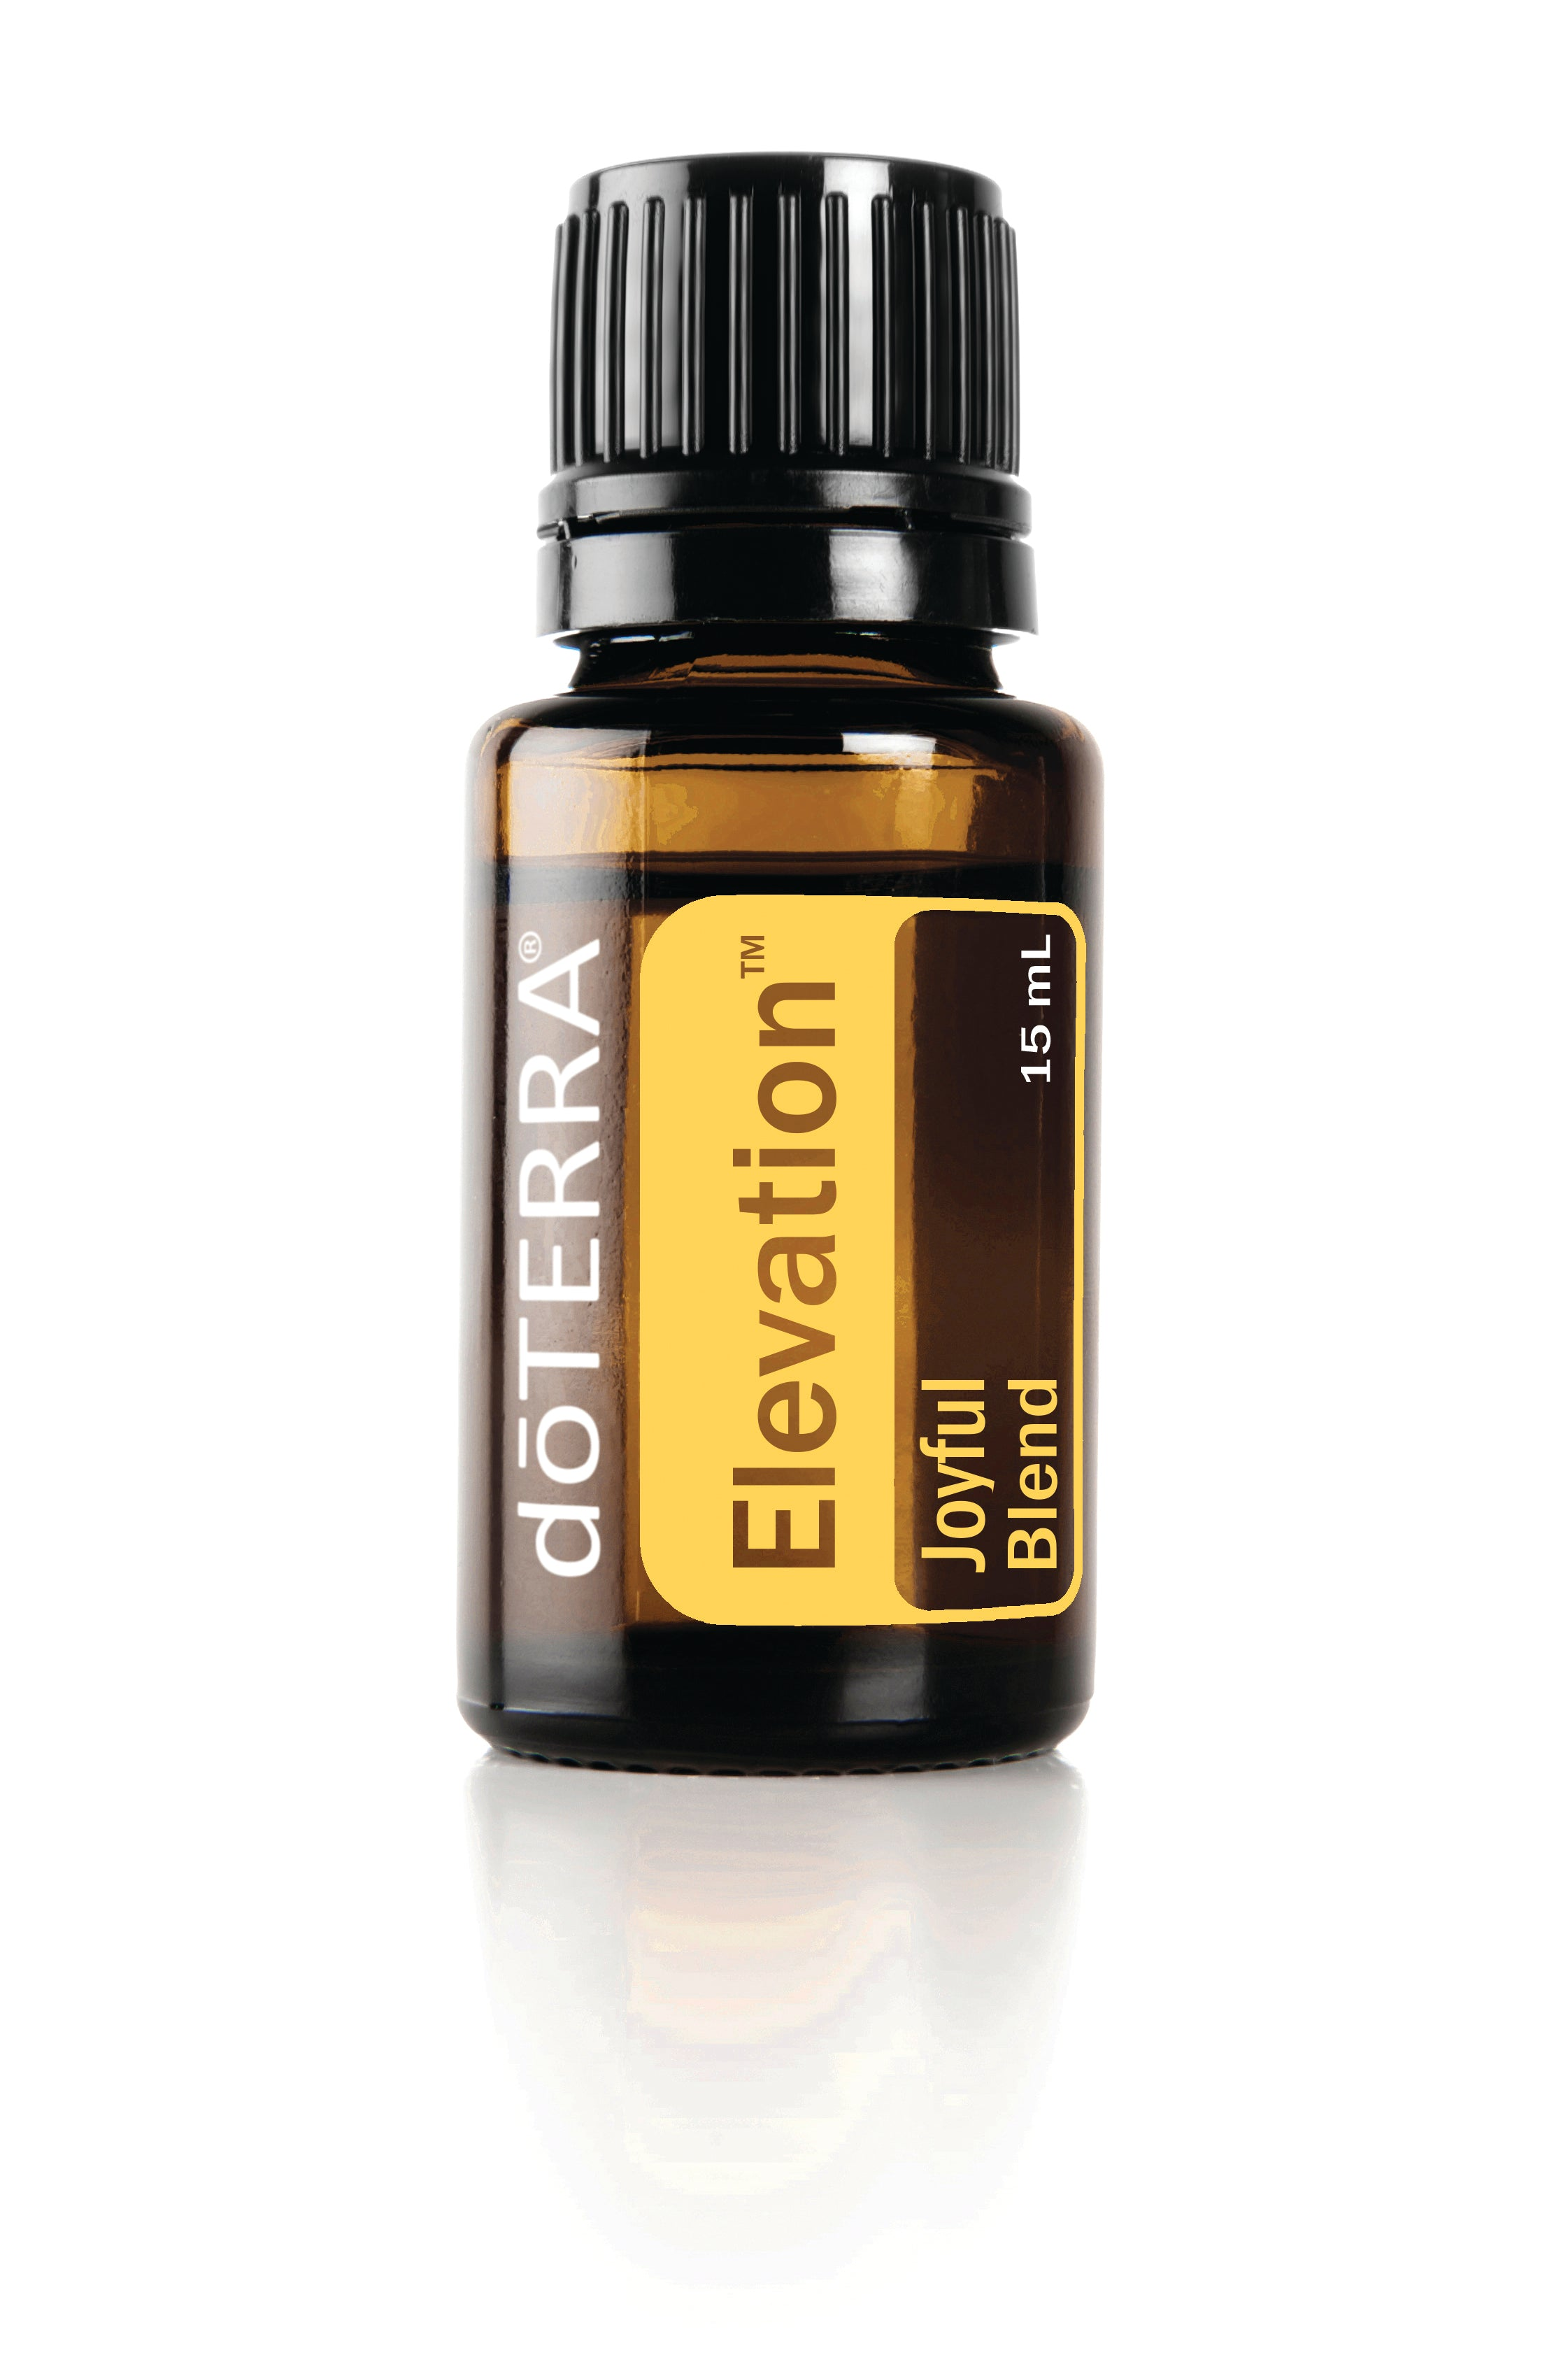 Elevation Essential Oil Blend 15ml